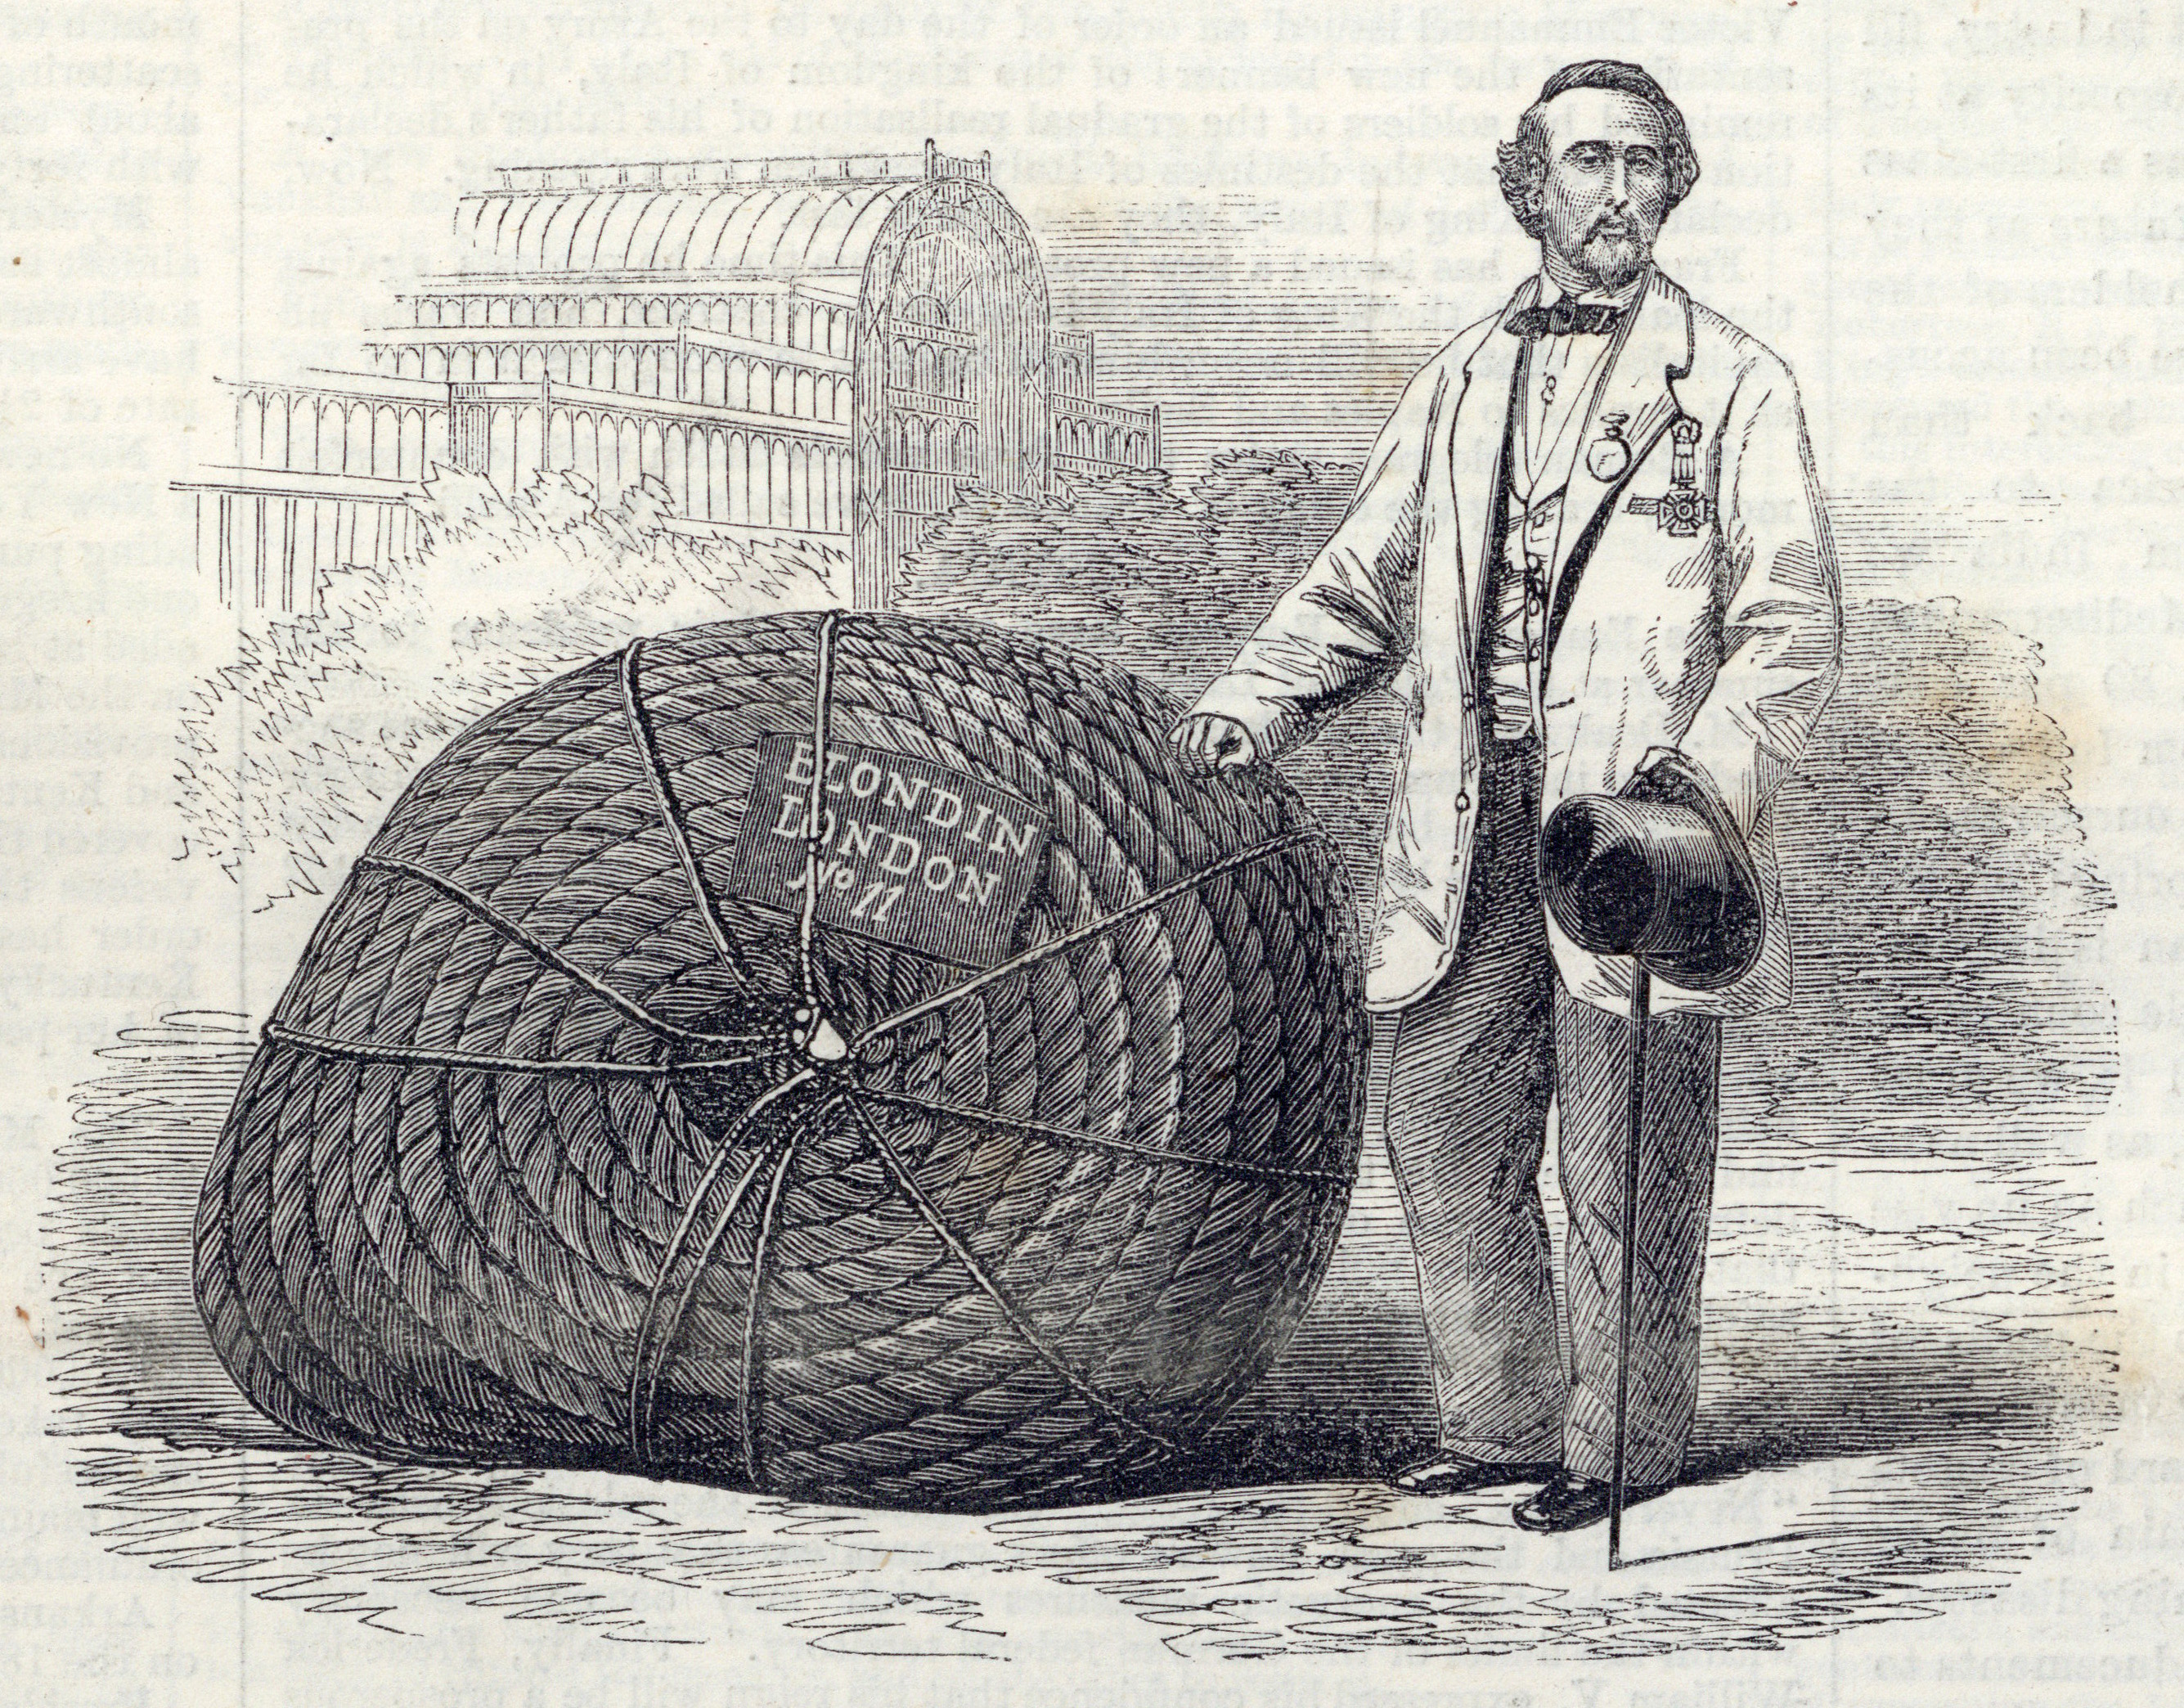 Blondin and the rope he needed for performances at the Crystal Palace from: Illustrated London News, June 8, 1861